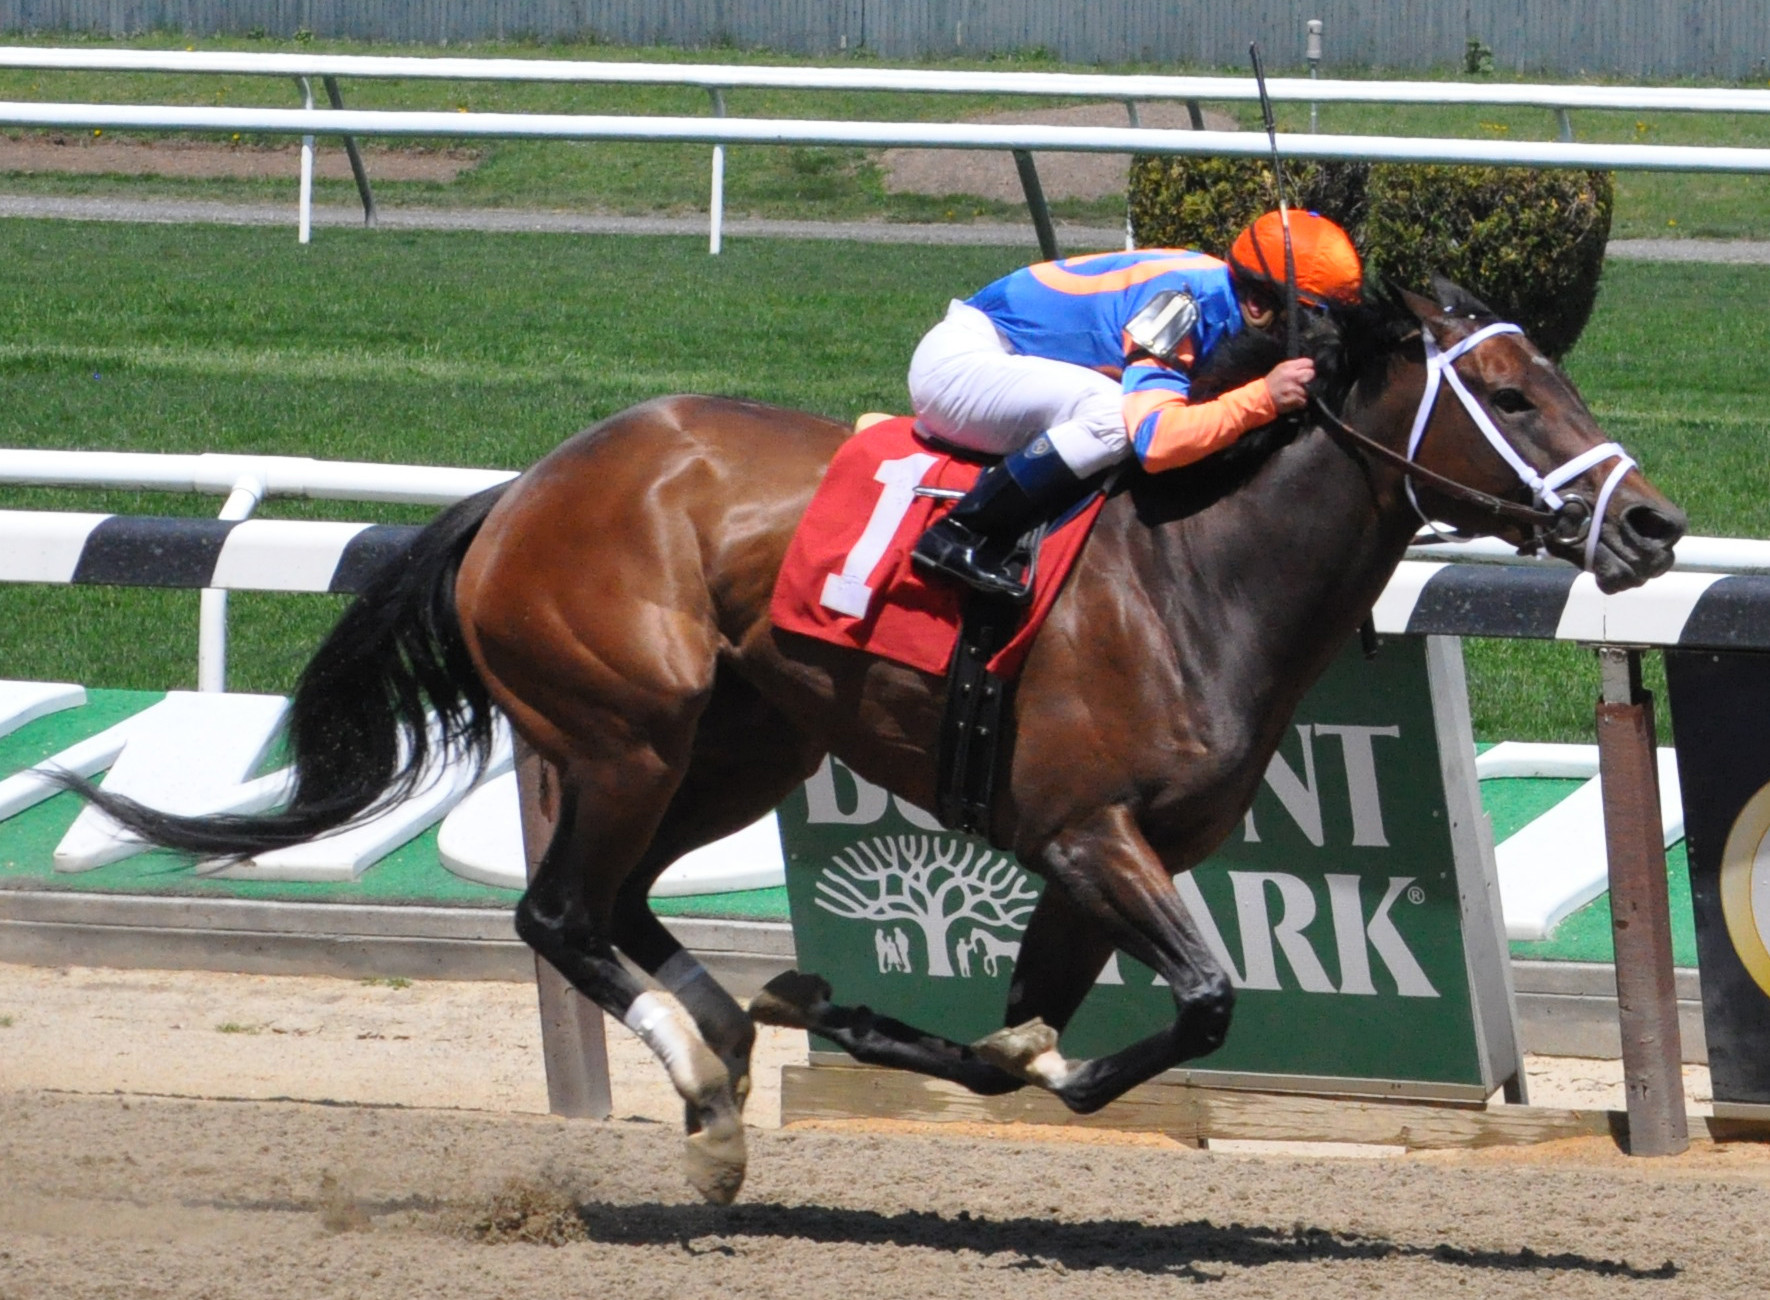 Read The Research, with jockey Javier Castellano aboard, took the 2013 Belmont Spring/Summer Meet opener.